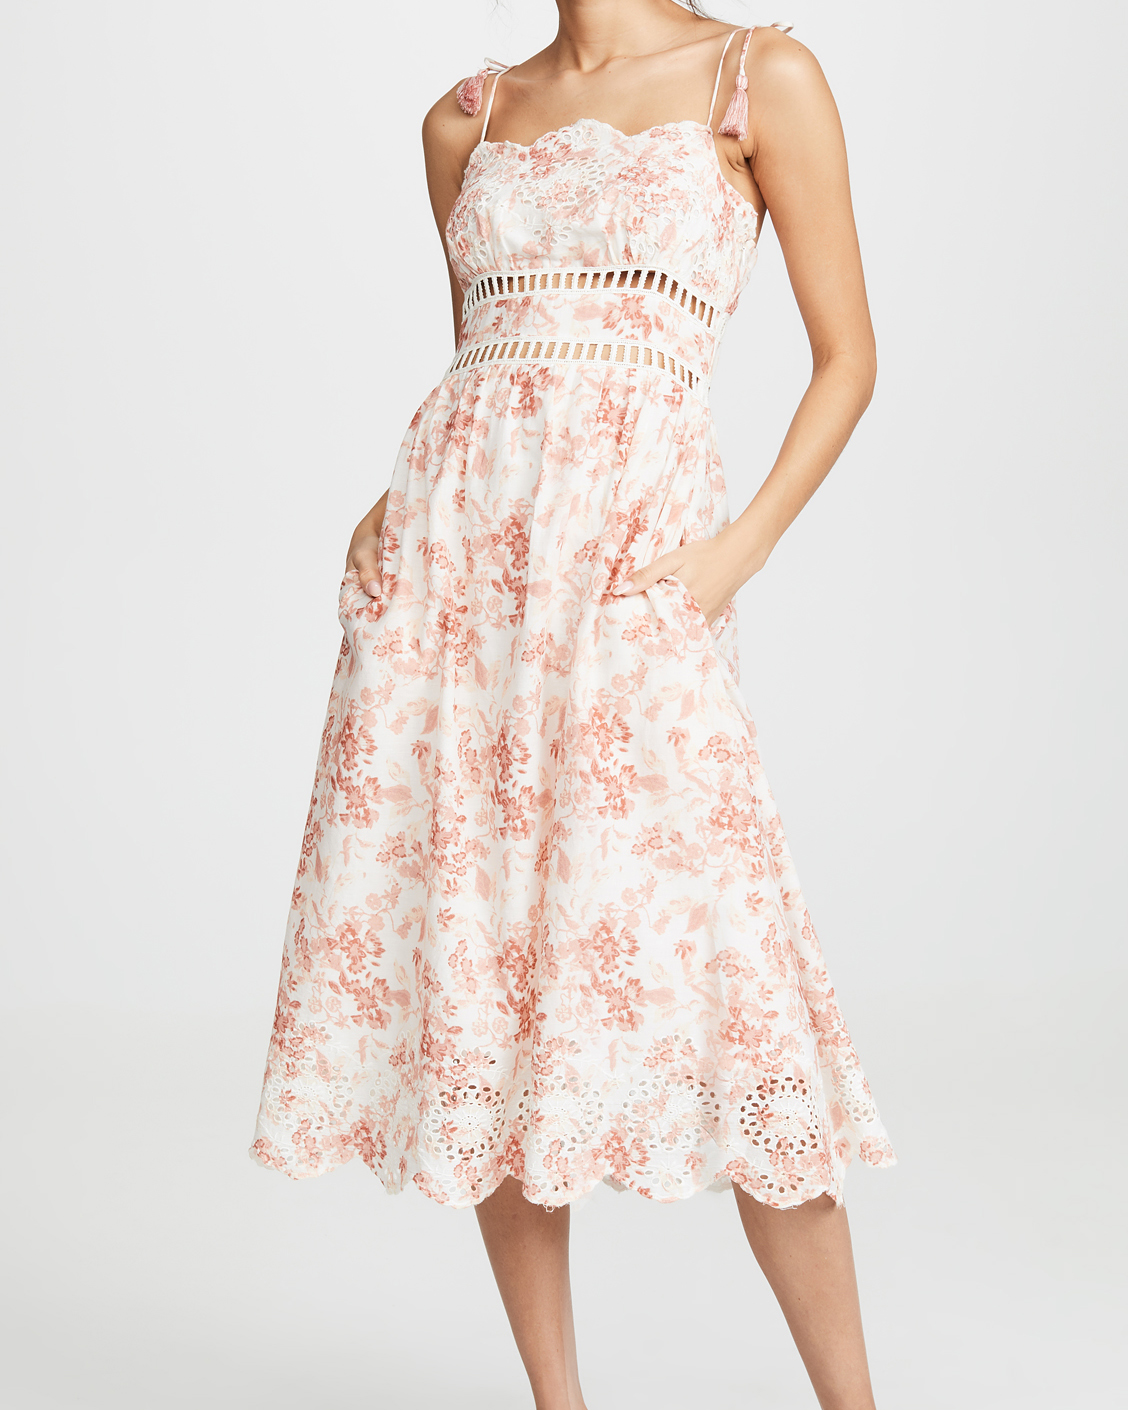 spaghetti strap floral pattern dress with pockets